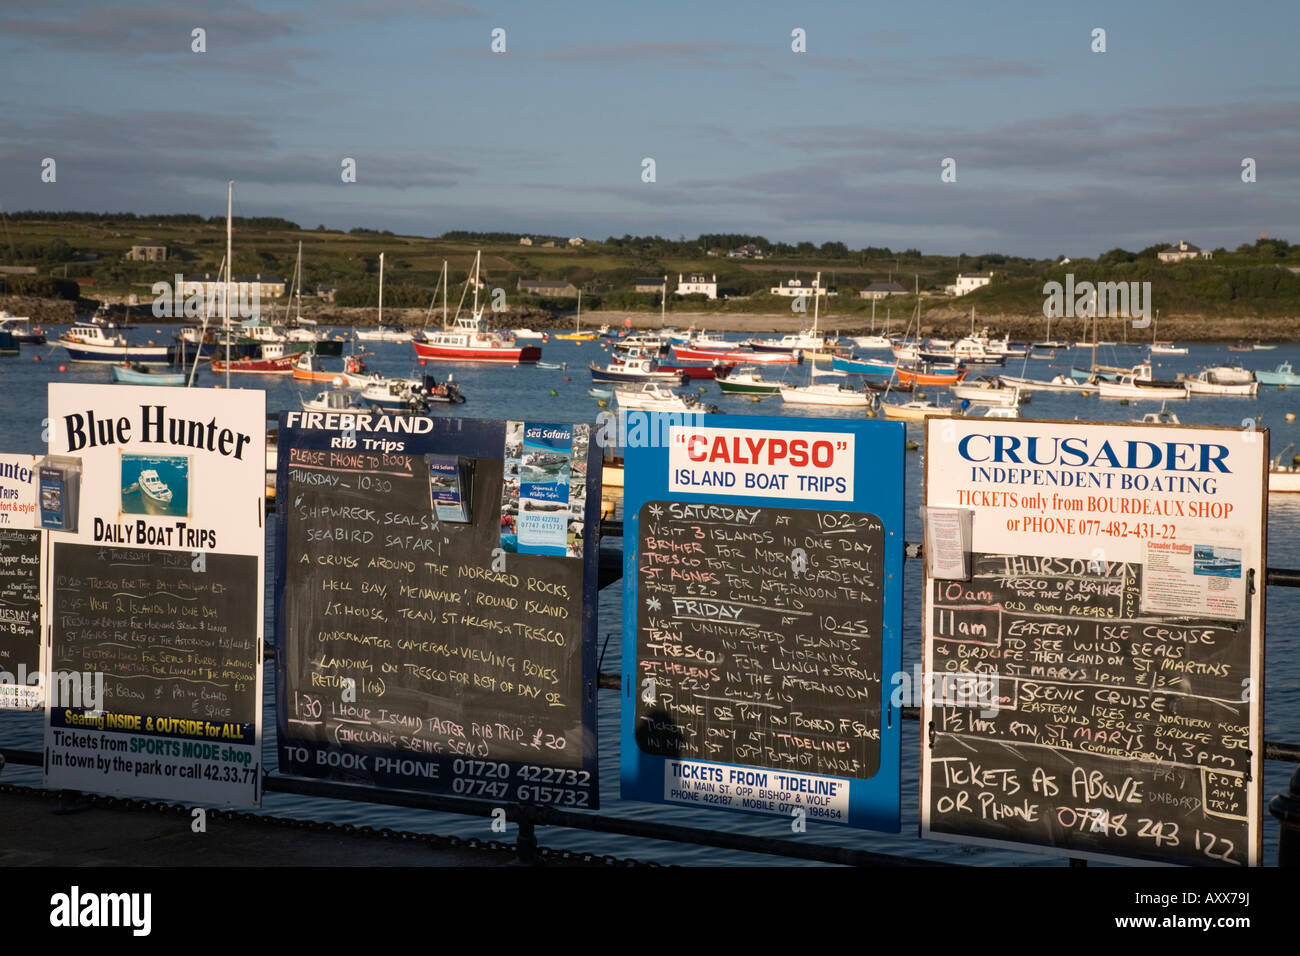 hugh town harbour st marys isles of scilly - Stock Image